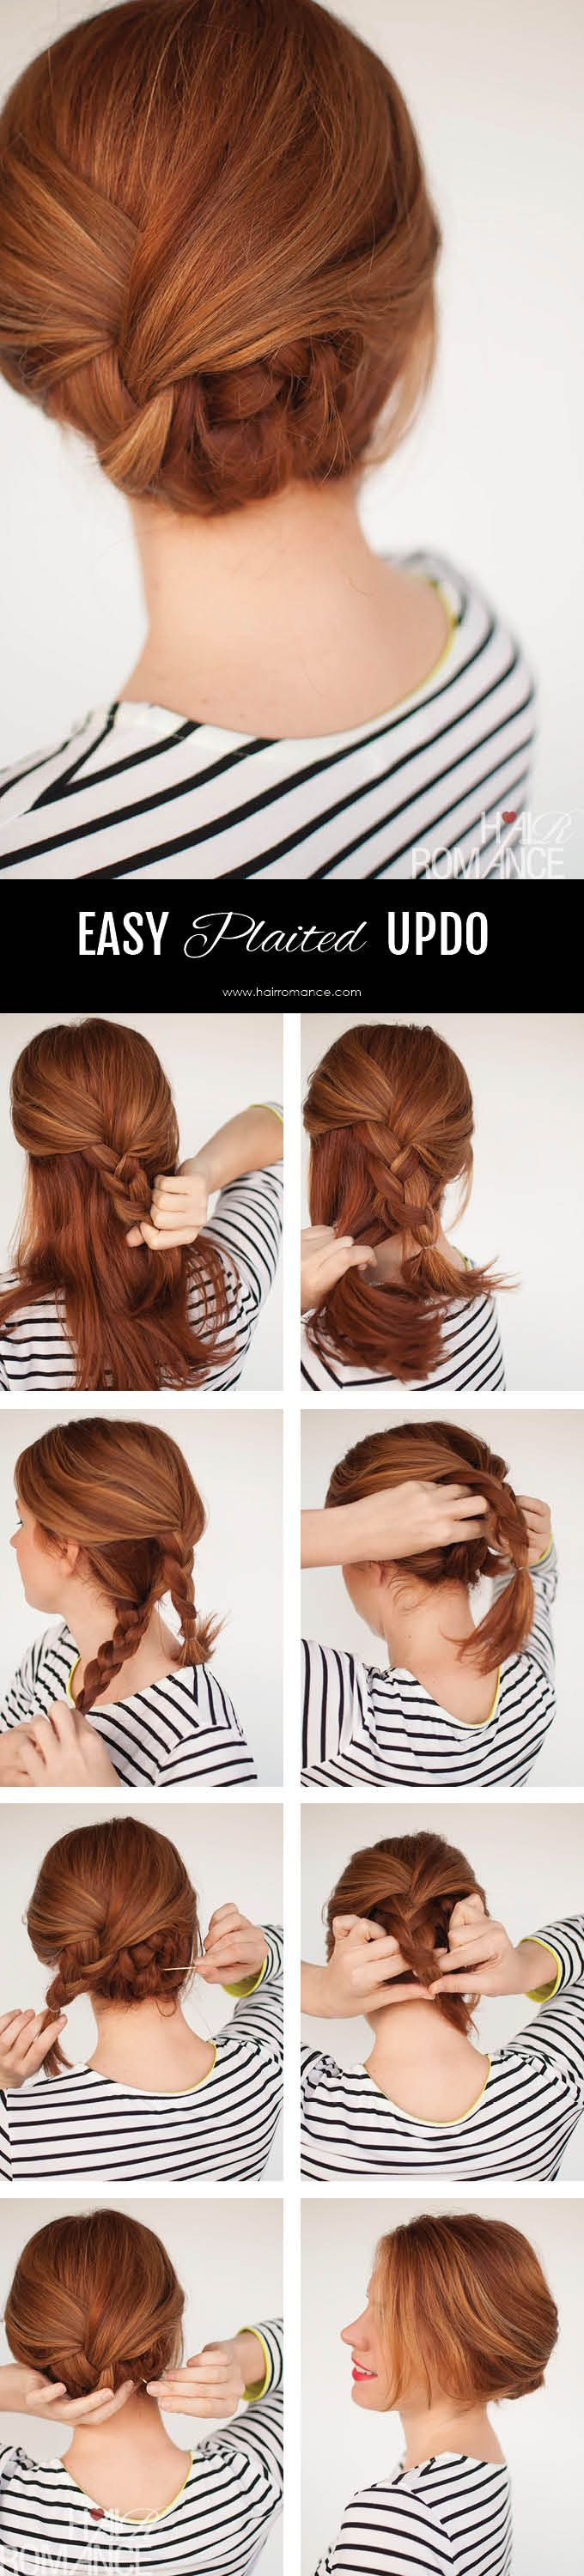 Easy plaited updo hairstyle tutorial hair style pinterest updo